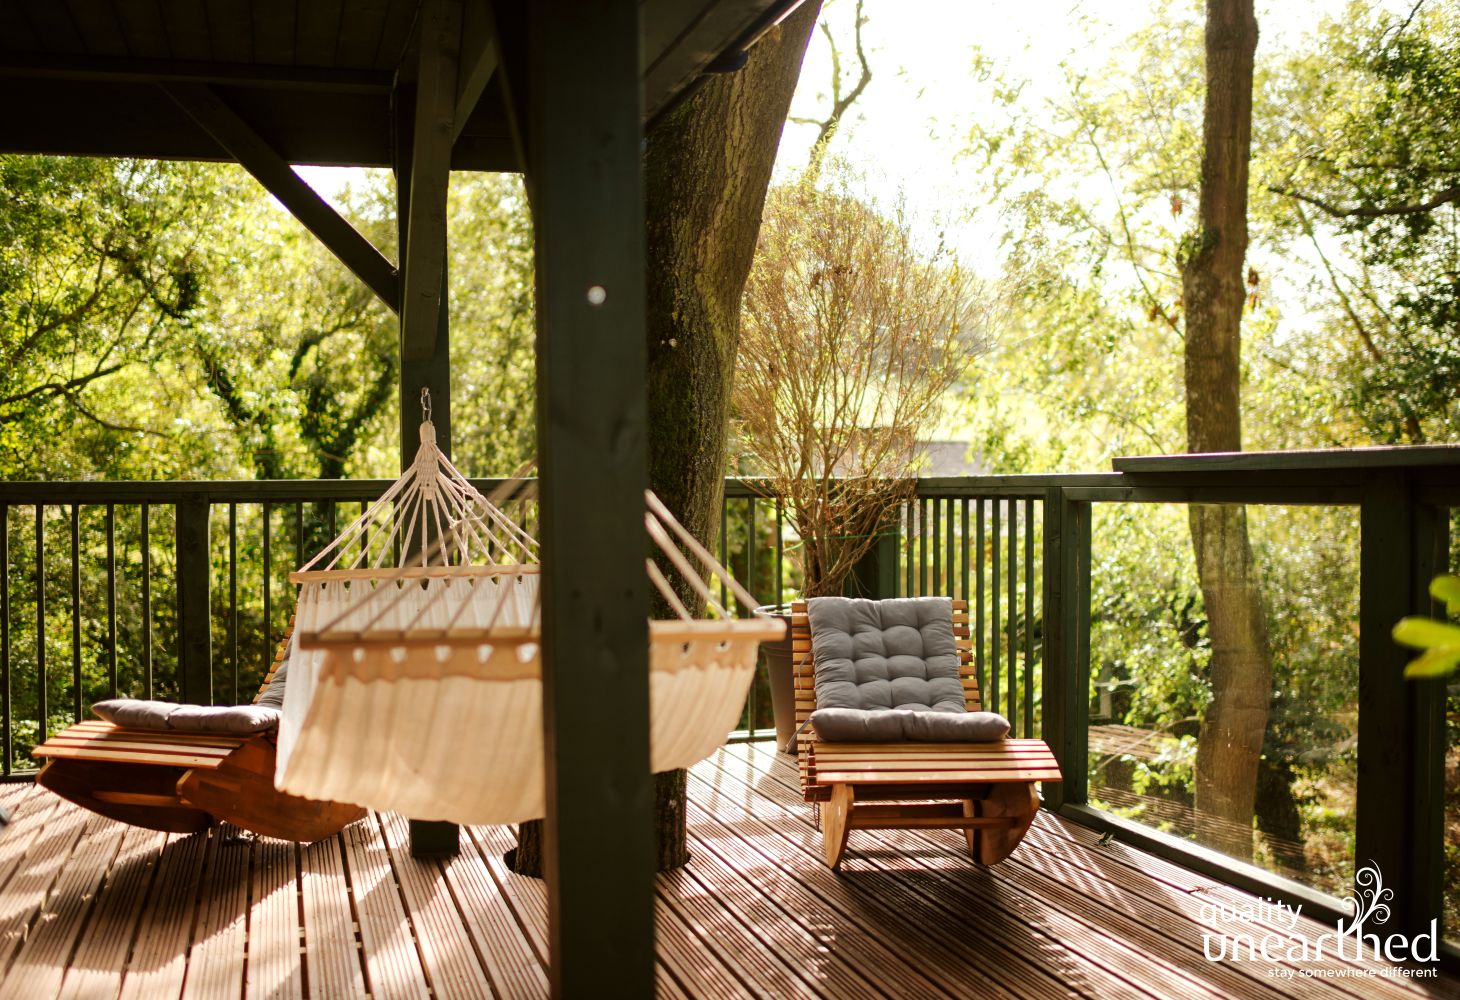 Take your pick of relaxing places to stay at this romantic treehouse